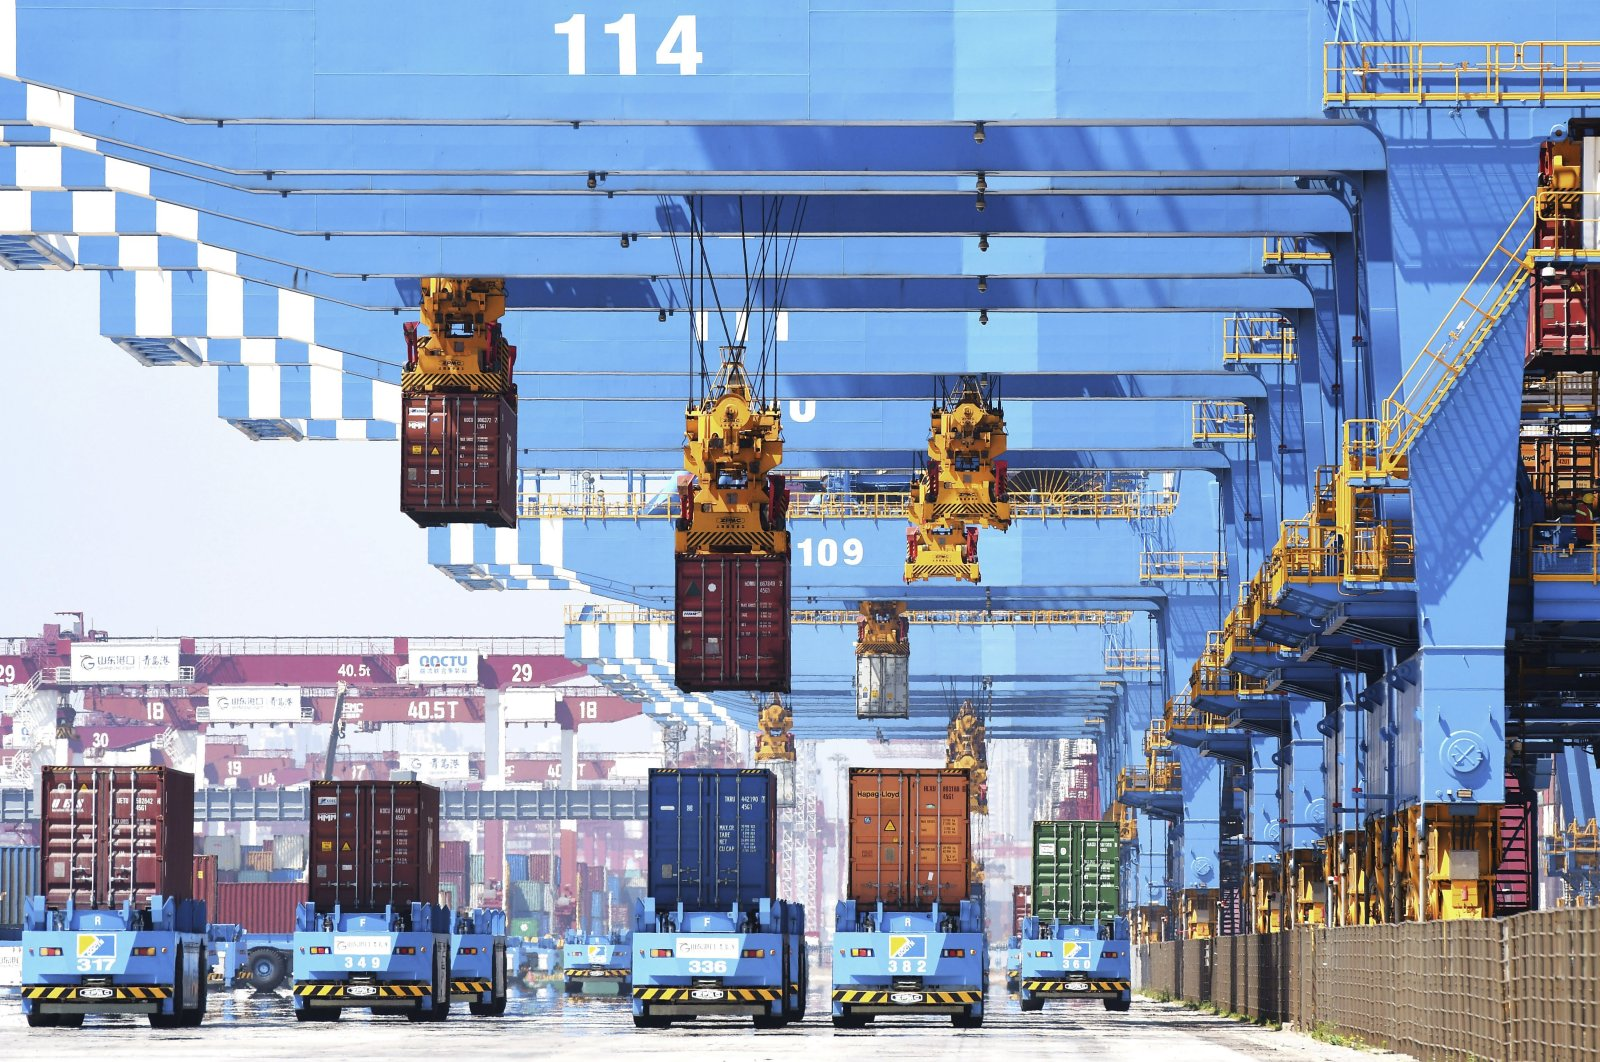 Gantry cranes move containers onto transporters at a port in Qingdao in eastern China's Shandong province, June 4, 2021. (AP Photo)